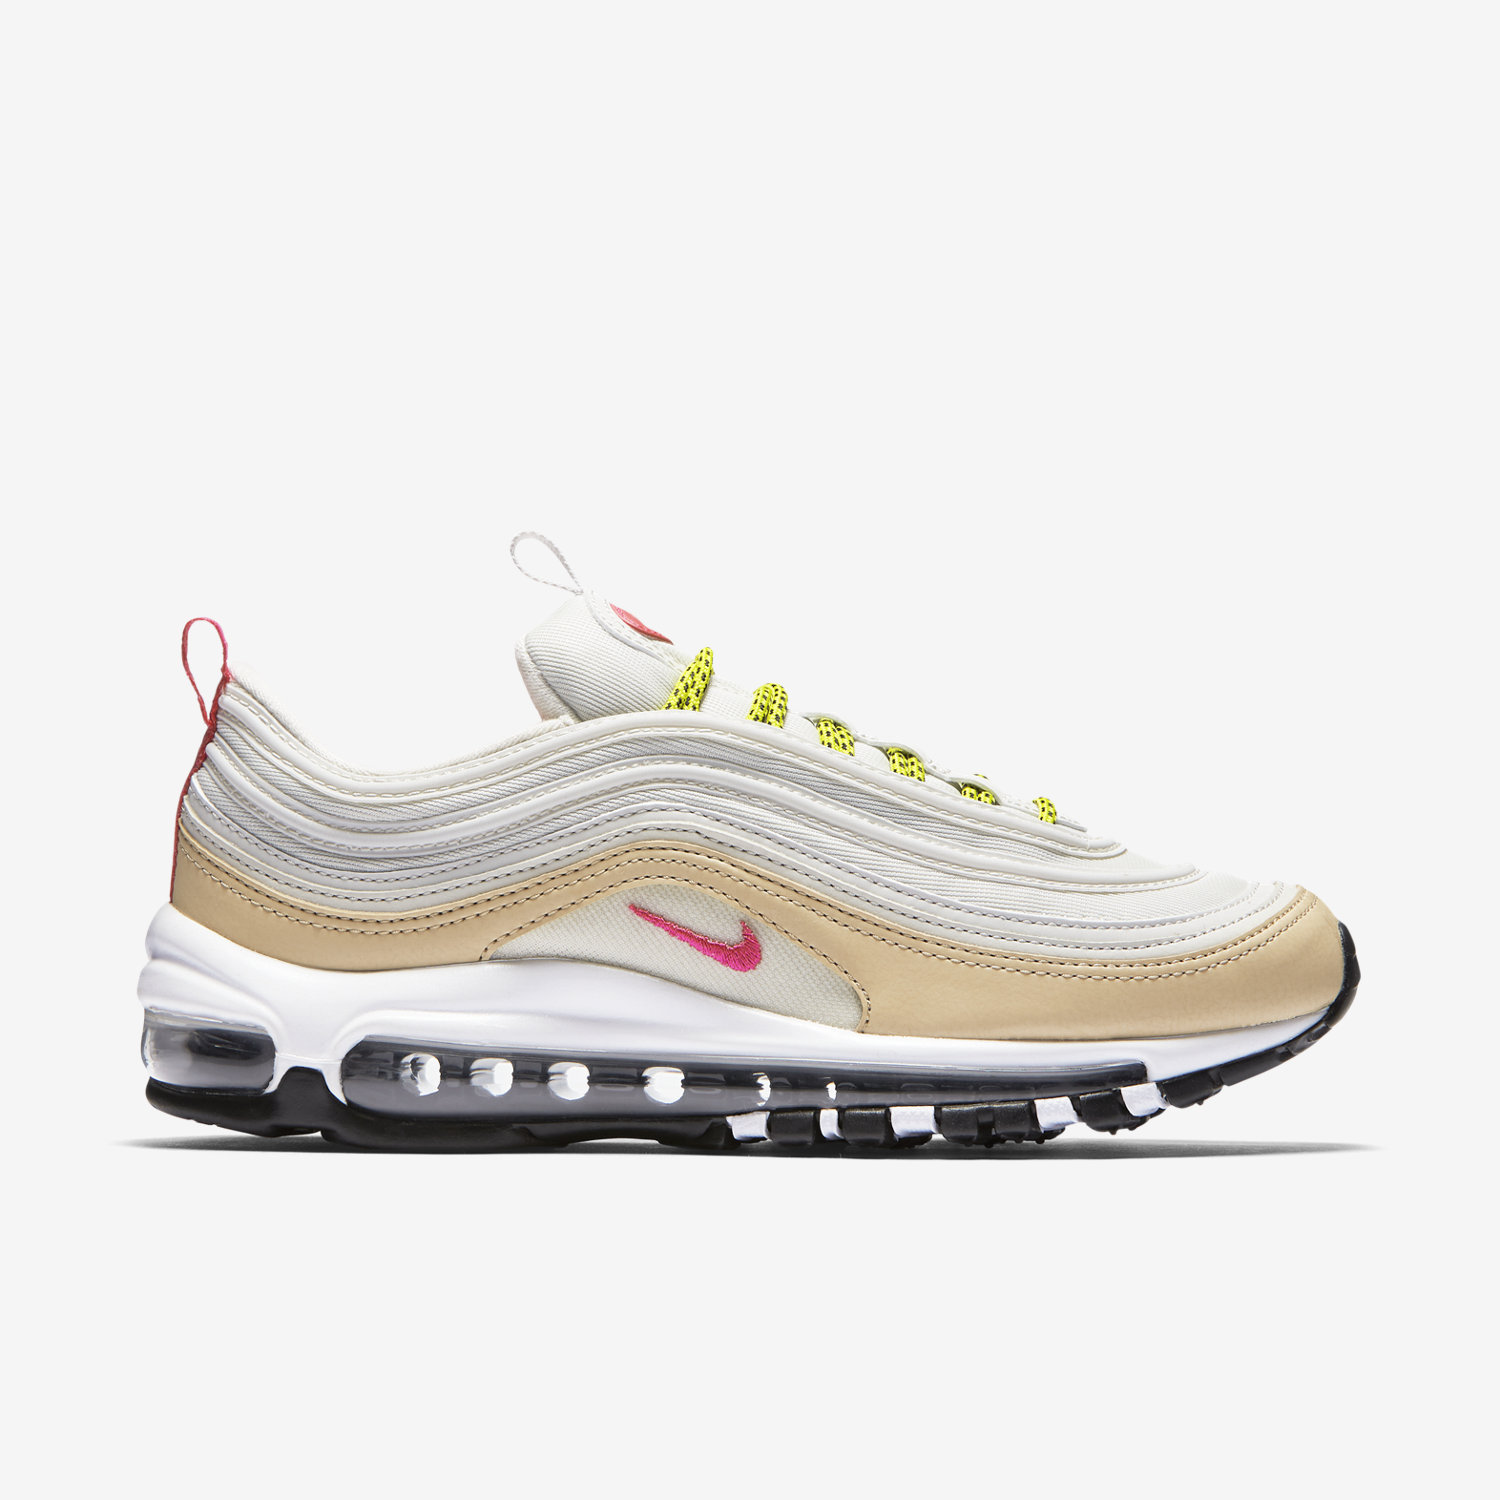 Cheap Nike Air Max 97 White Midnight Navy Cladem